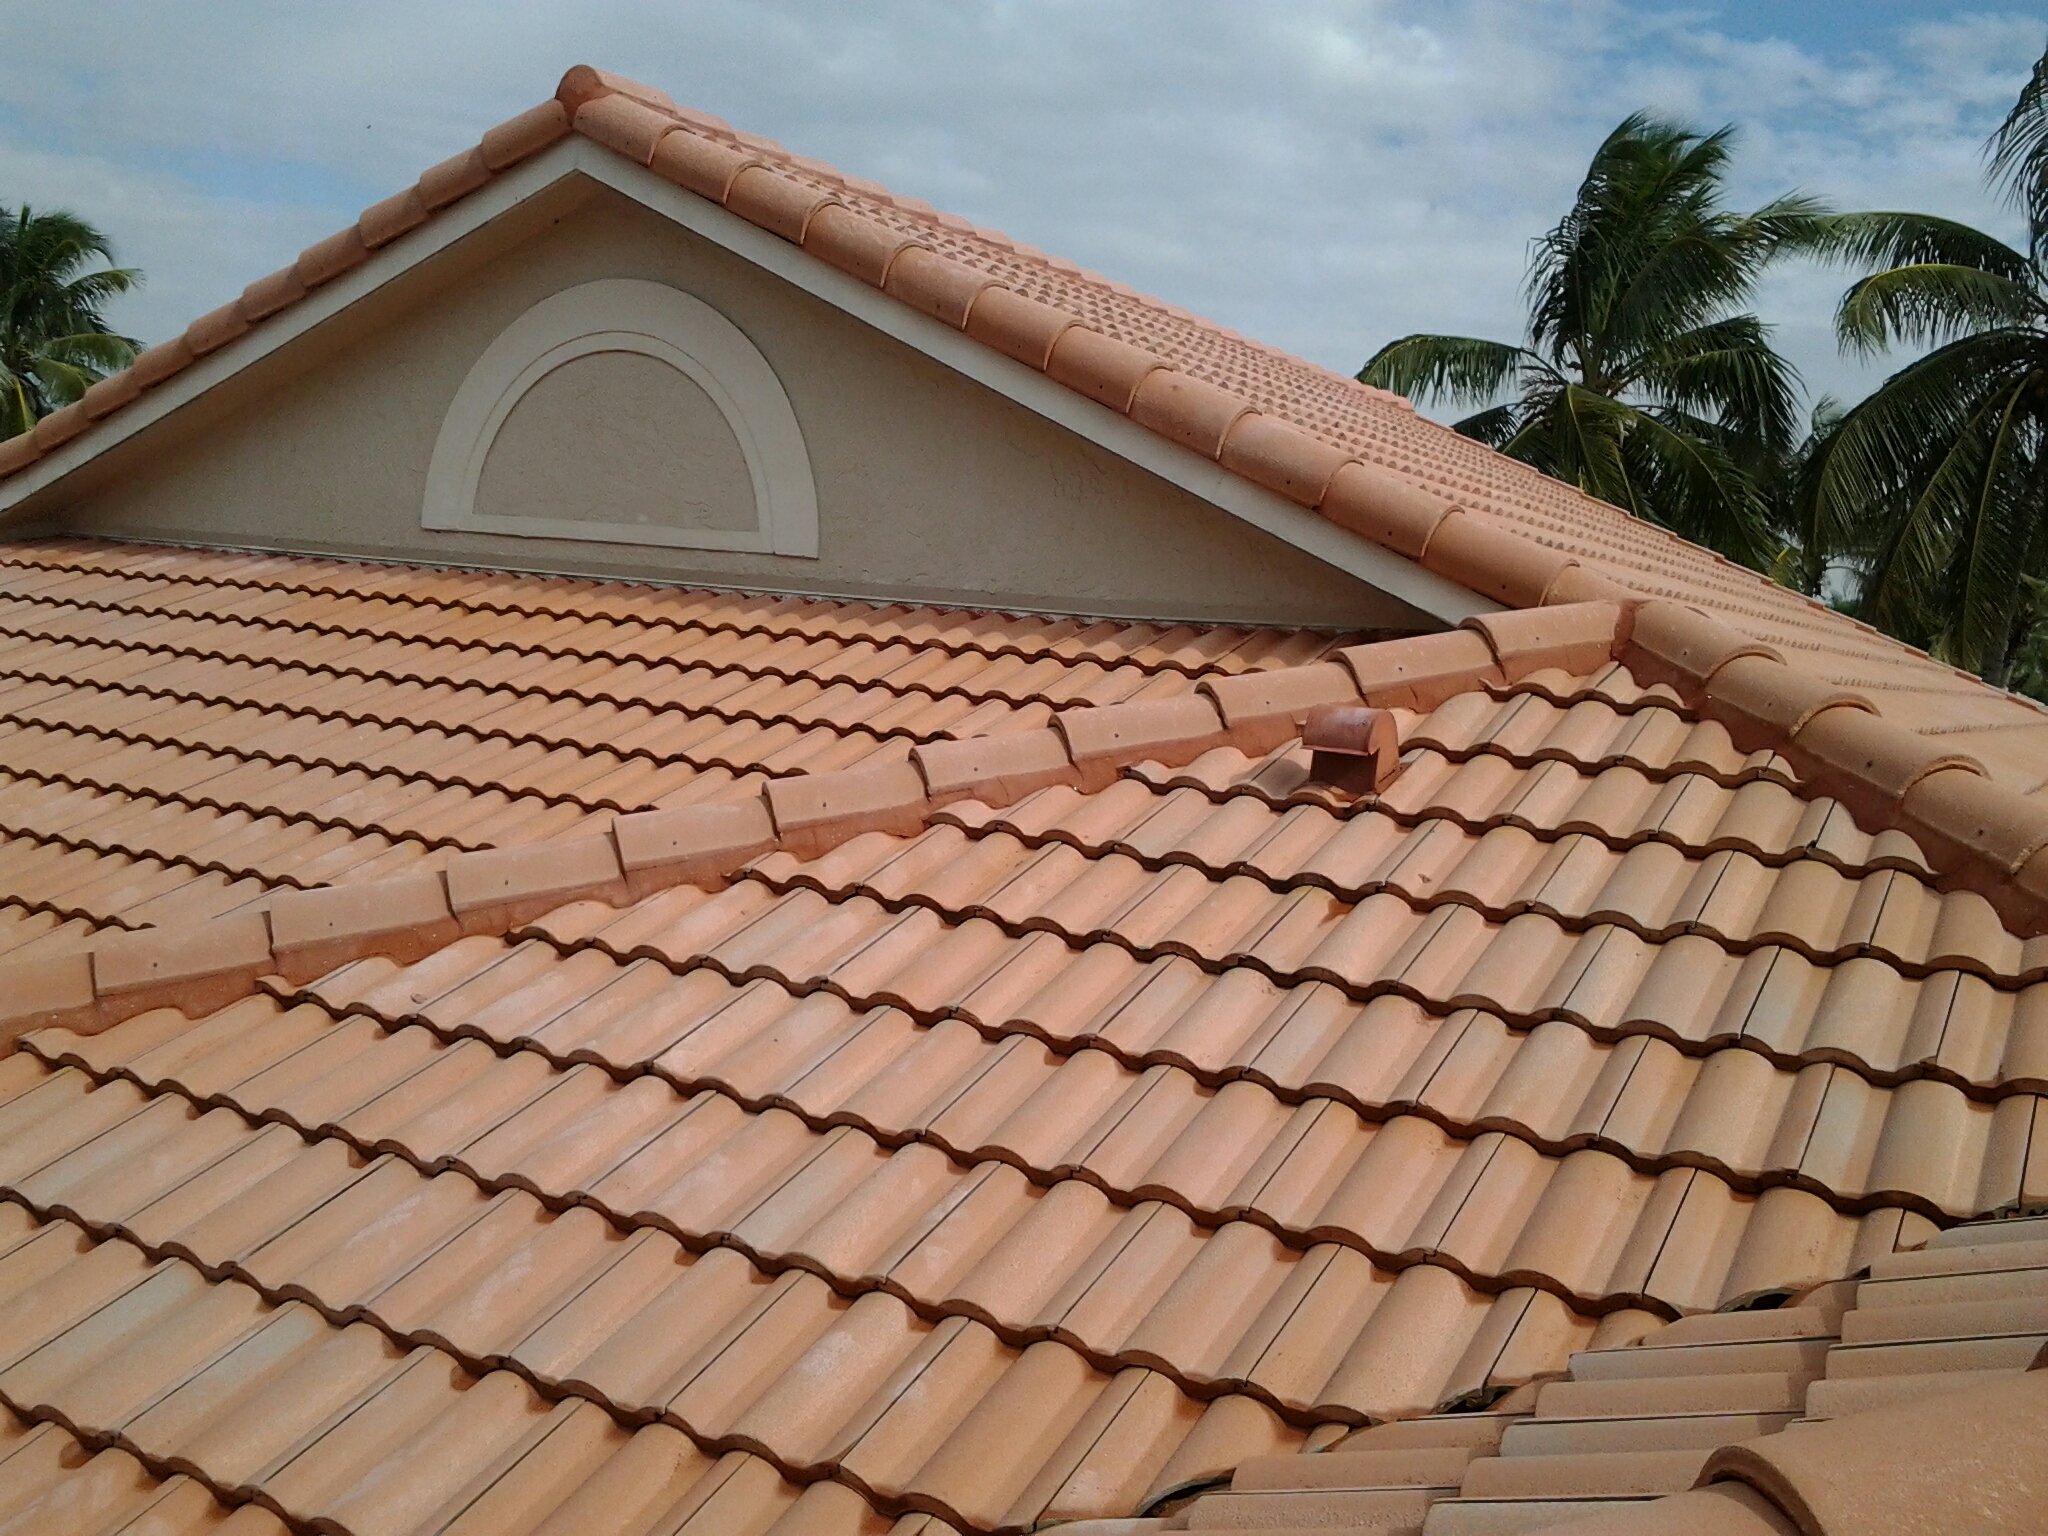 Plantation, FL - Pressure clean and roof a cide roof glue 8 tiles